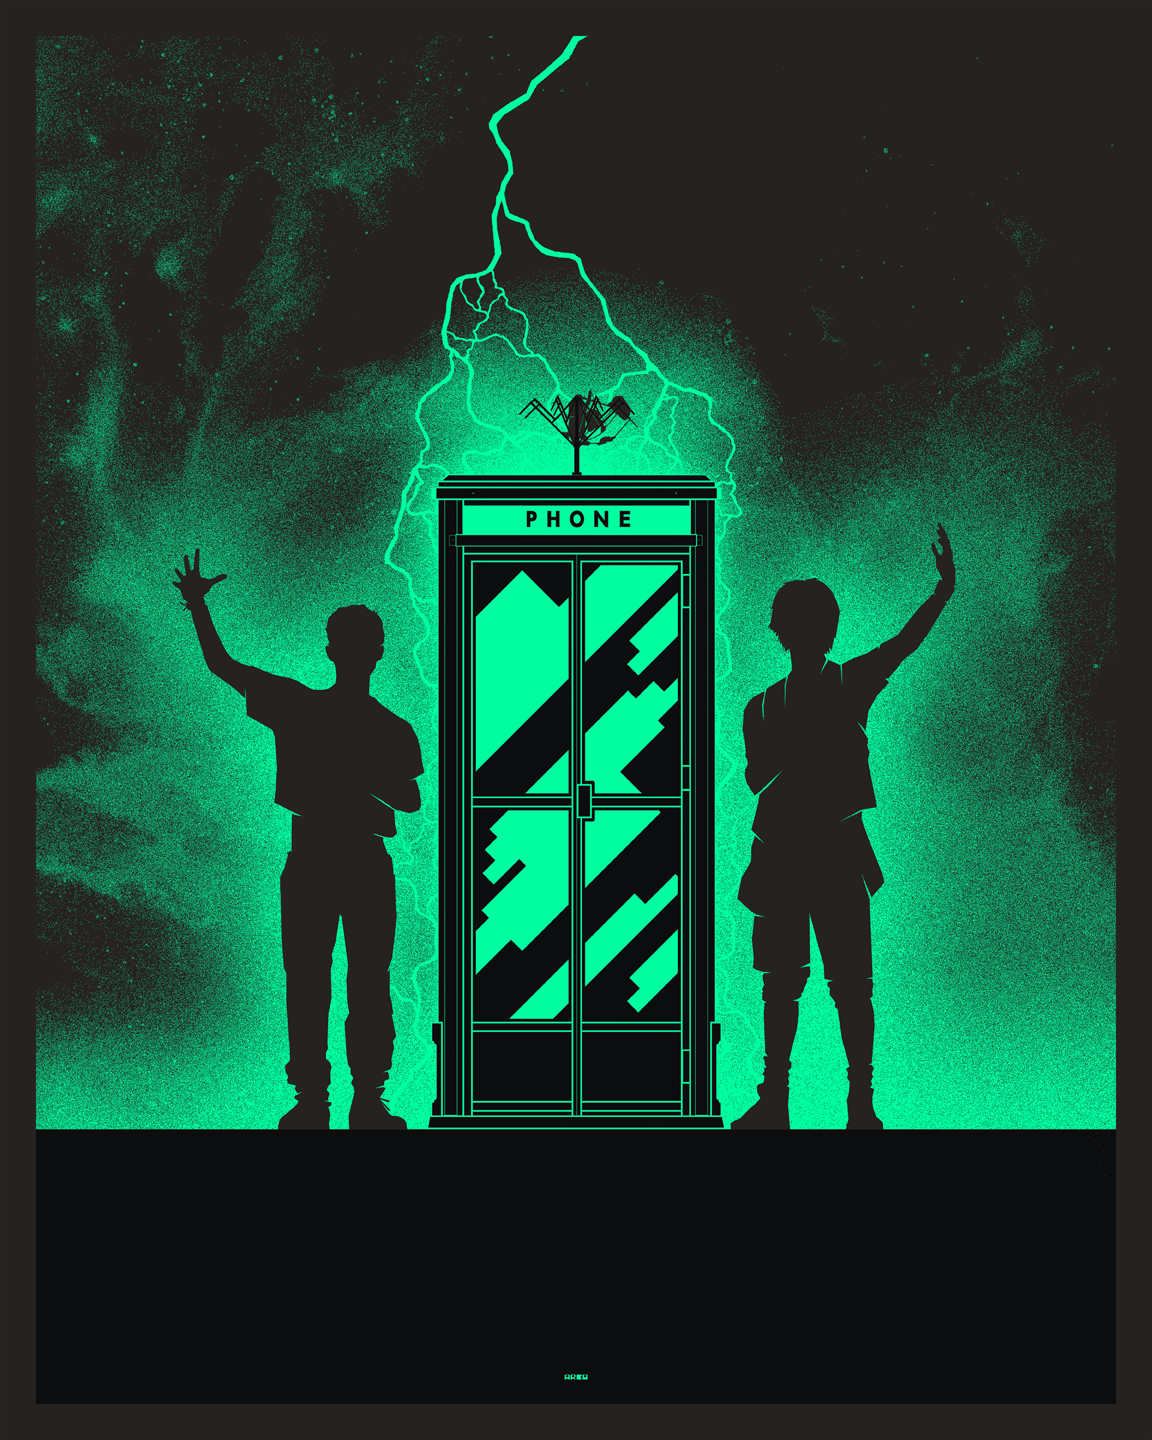 Matt Ferguson Reveals His Totally Triumphant Glow In The Dark Posters, On Sale This Thursday